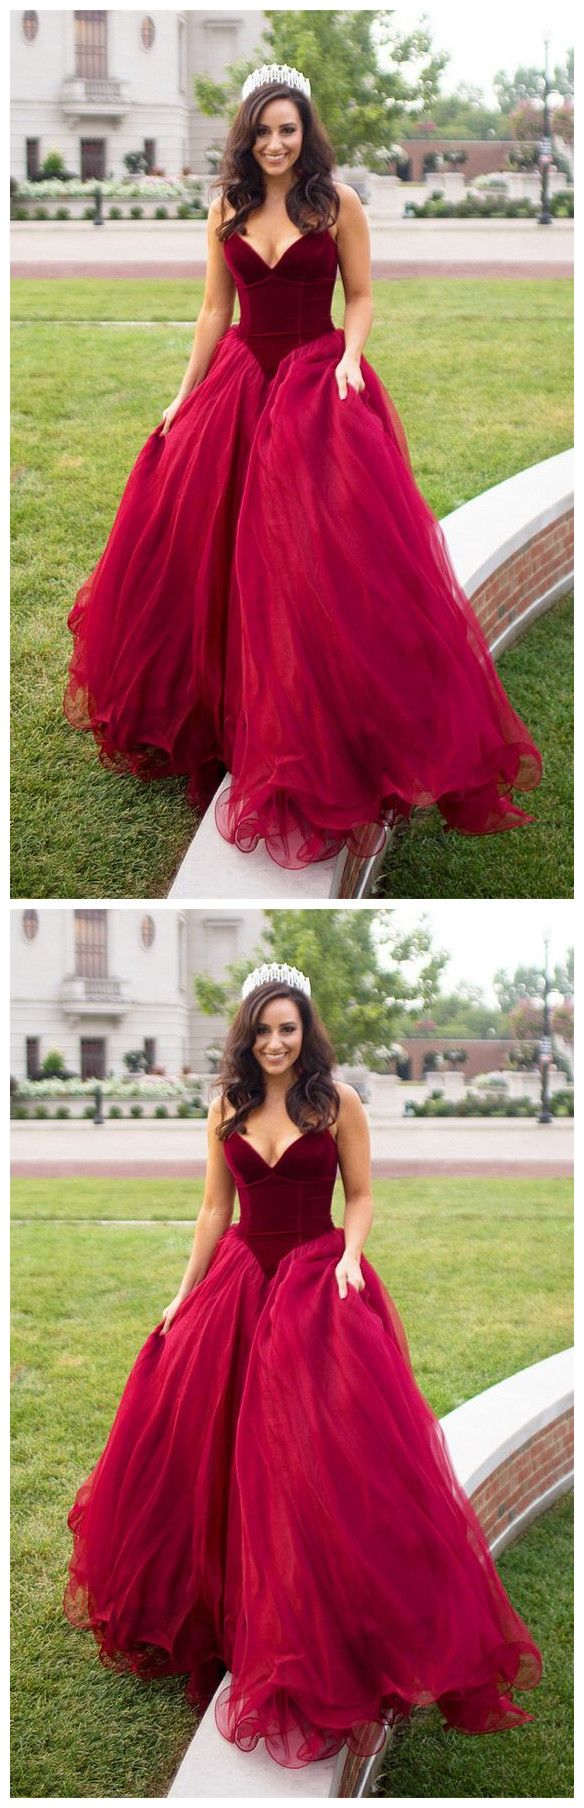 Burgundy deep v neckline velvet bust flowing layered bright red tulle skirt princess holiday gown